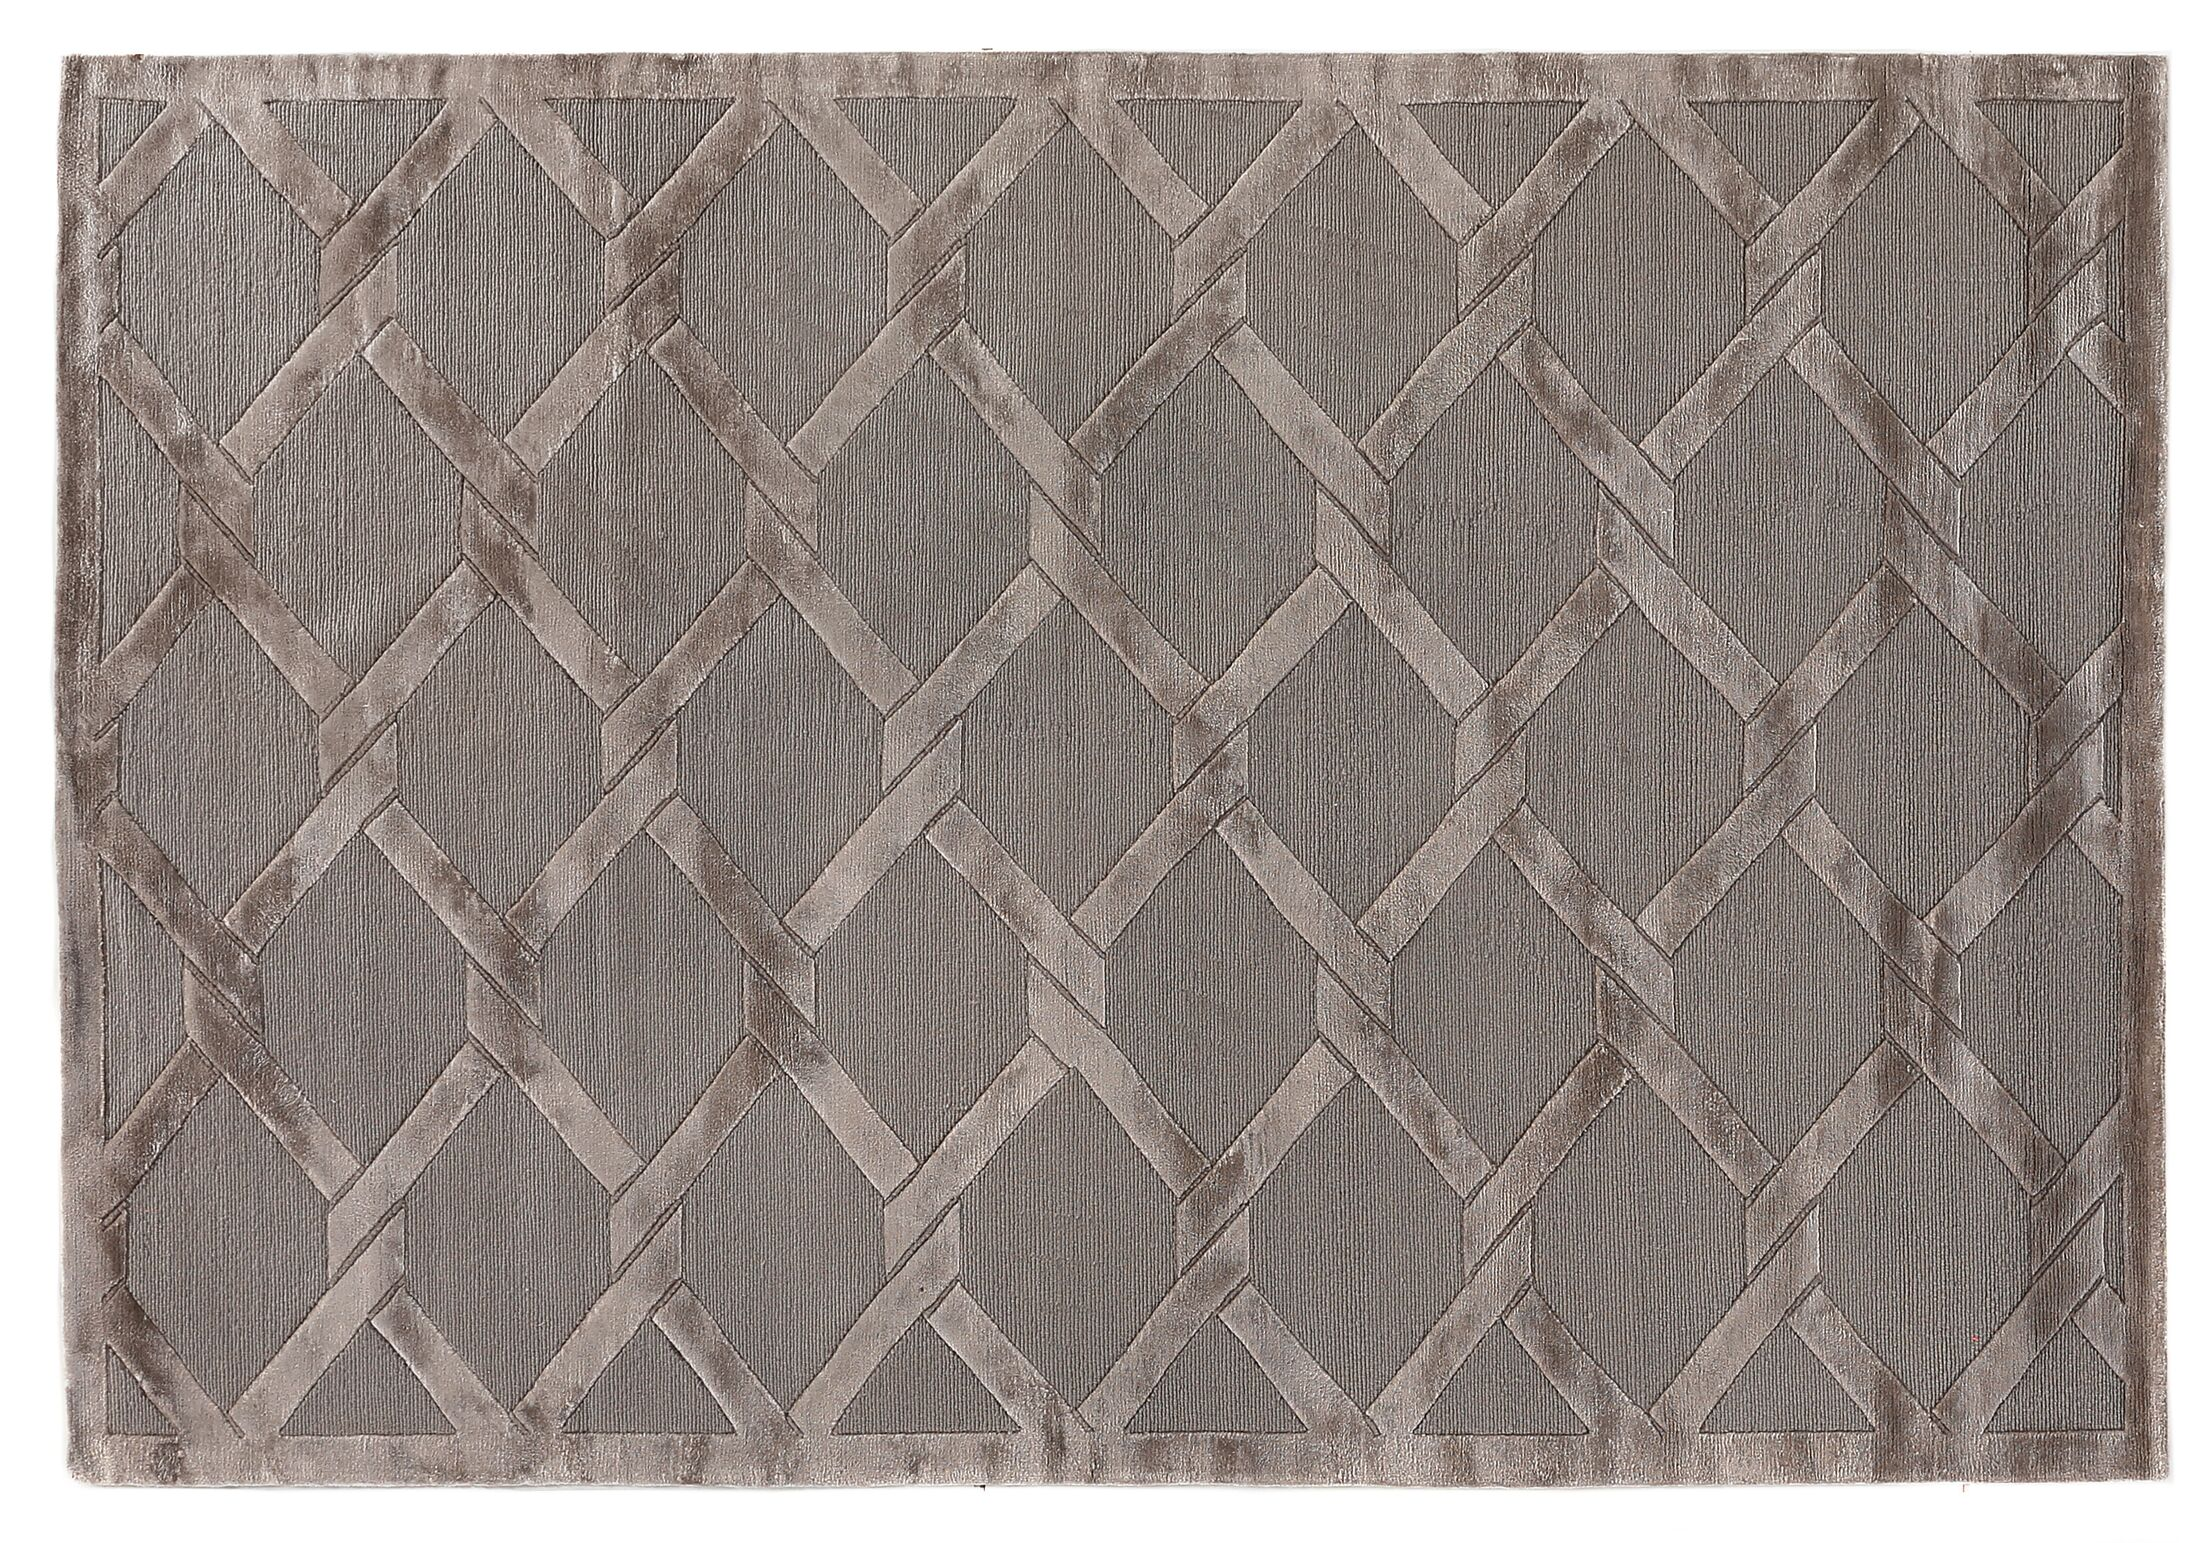 Hand-Knotted Wool/Silk Dark Gray/Brown Area Rug Rug Size: Rectangle 6' x 9'